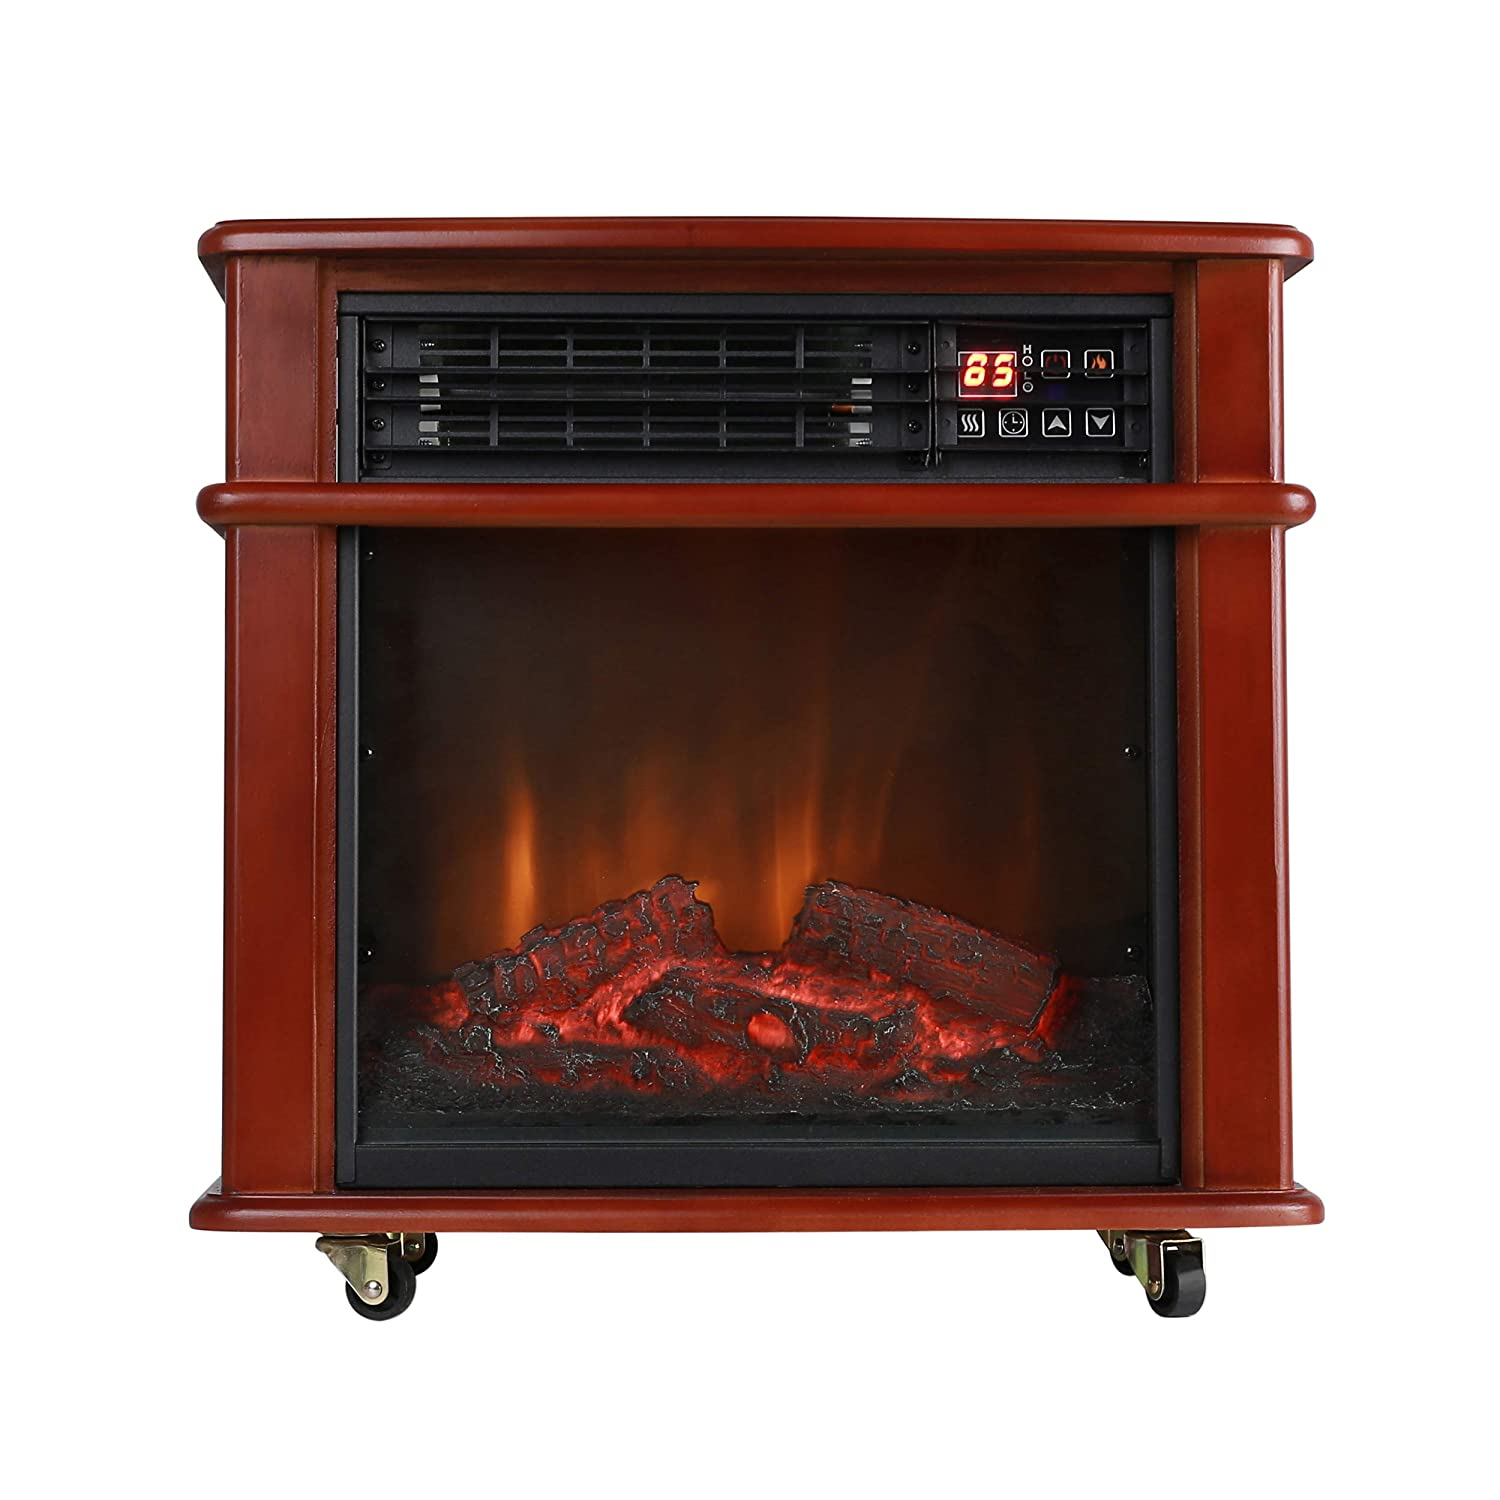 Caesar Fireplace Rolling Mantel 1000W-1500W Overheat Safety Feature with wheels Infrared Quartz Electric Freestanding Insert Heater Stove Black